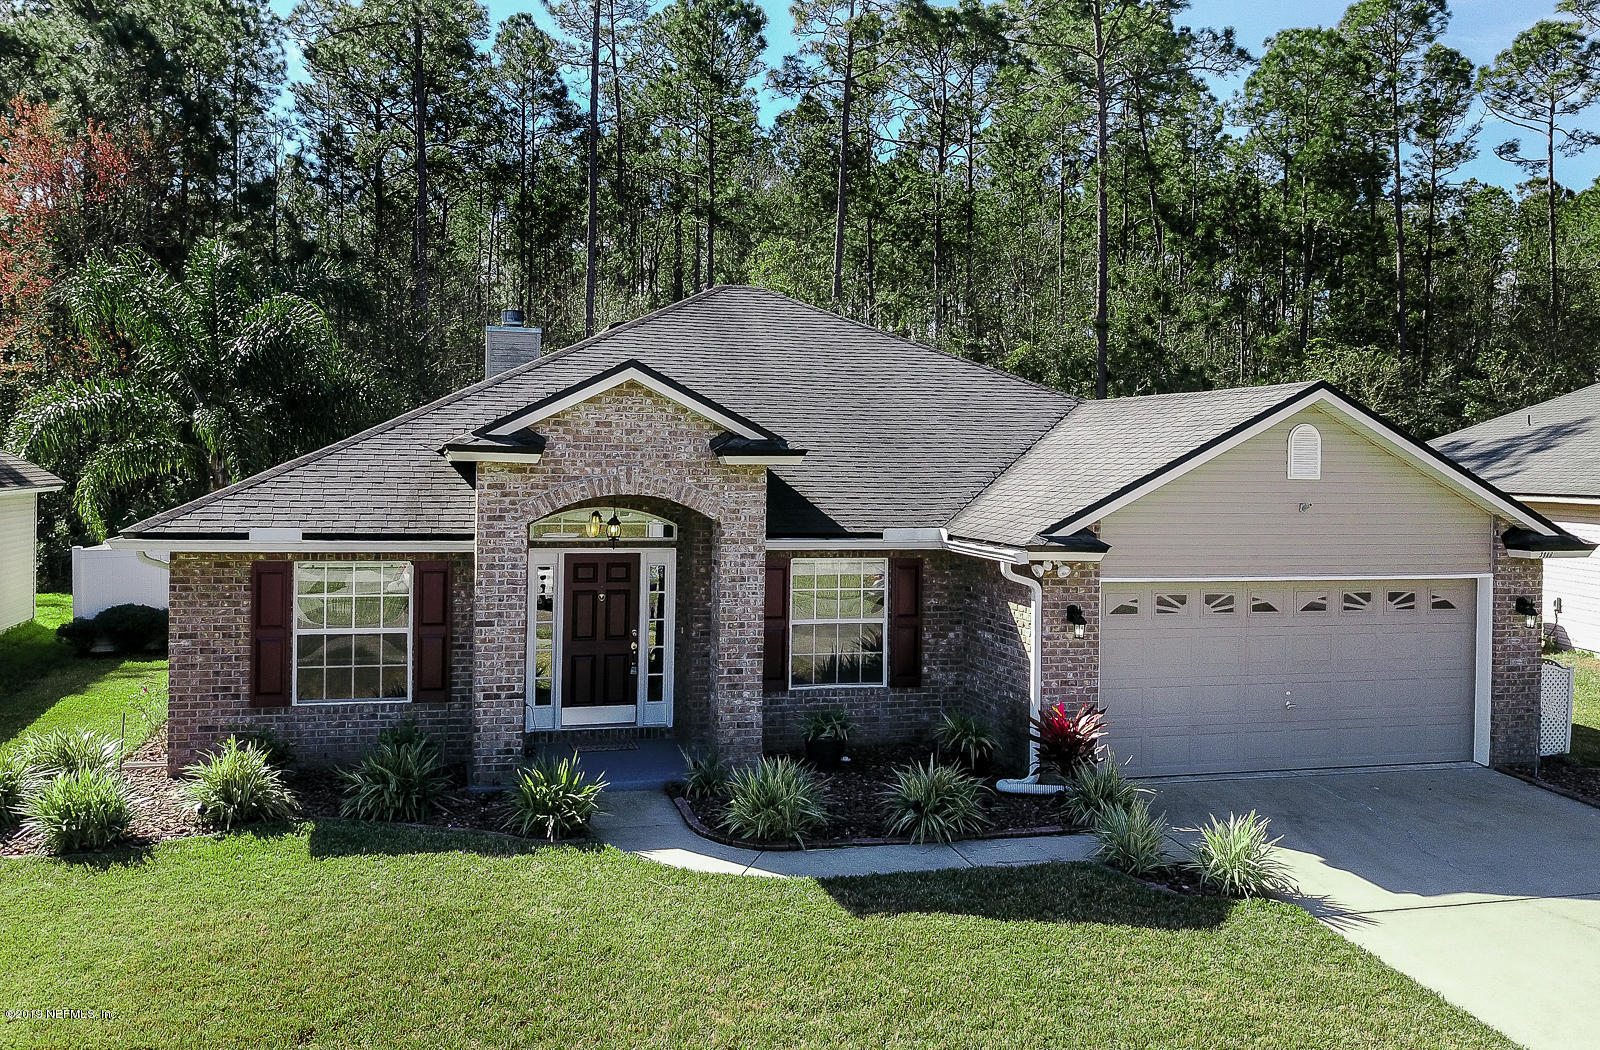 Photo of 3986 TRAIL RIDGE, MIDDLEBURG, FL 32068